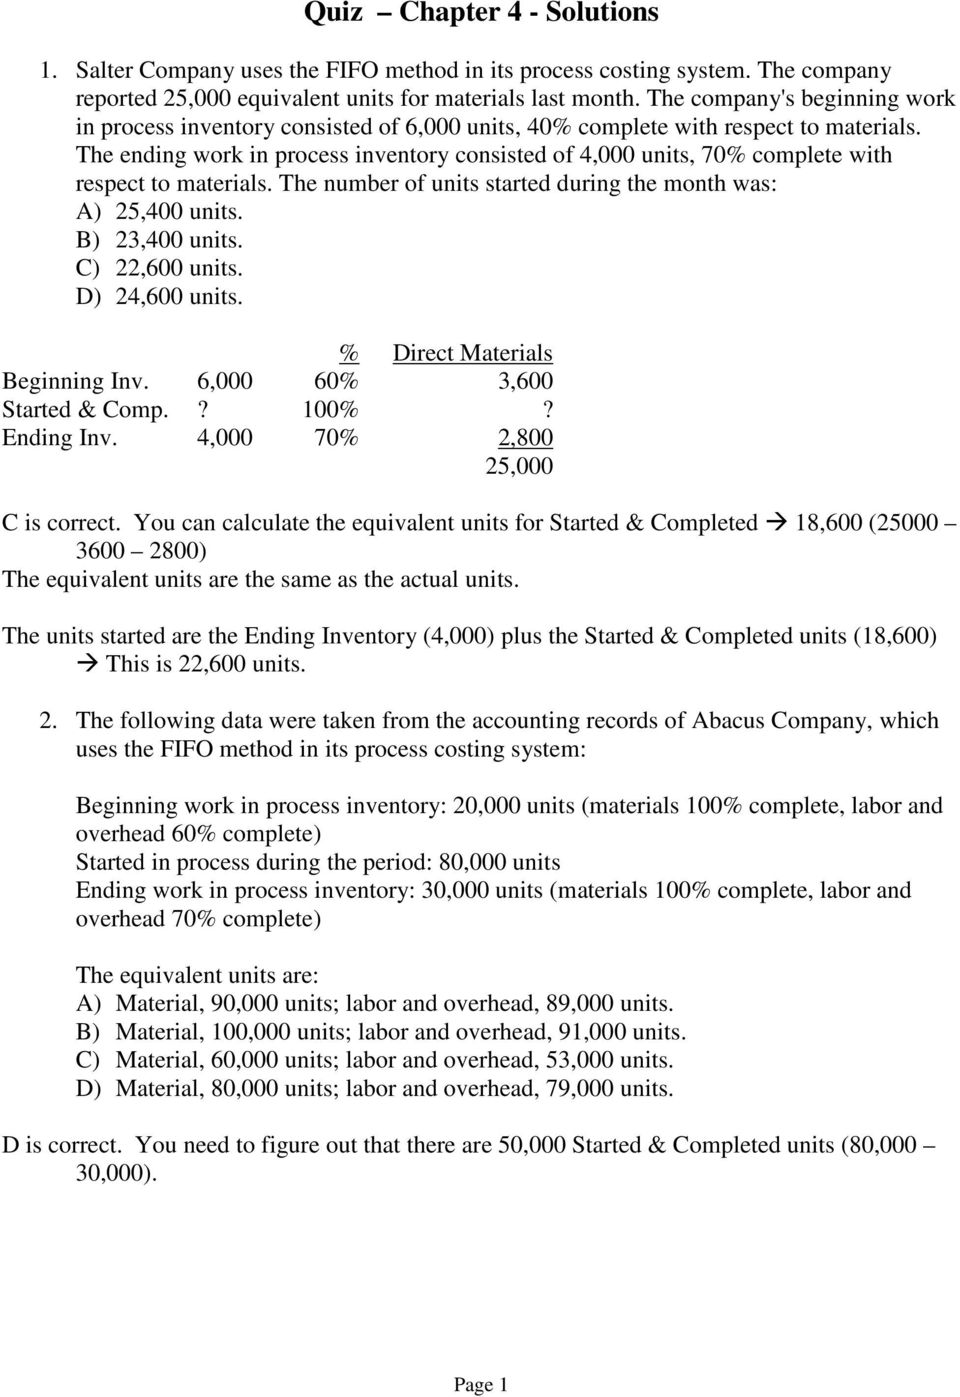 Quiz chapter 4 solutions pdf the ending work in process inventory consisted of 4000 units 70 complete with respect fandeluxe Images